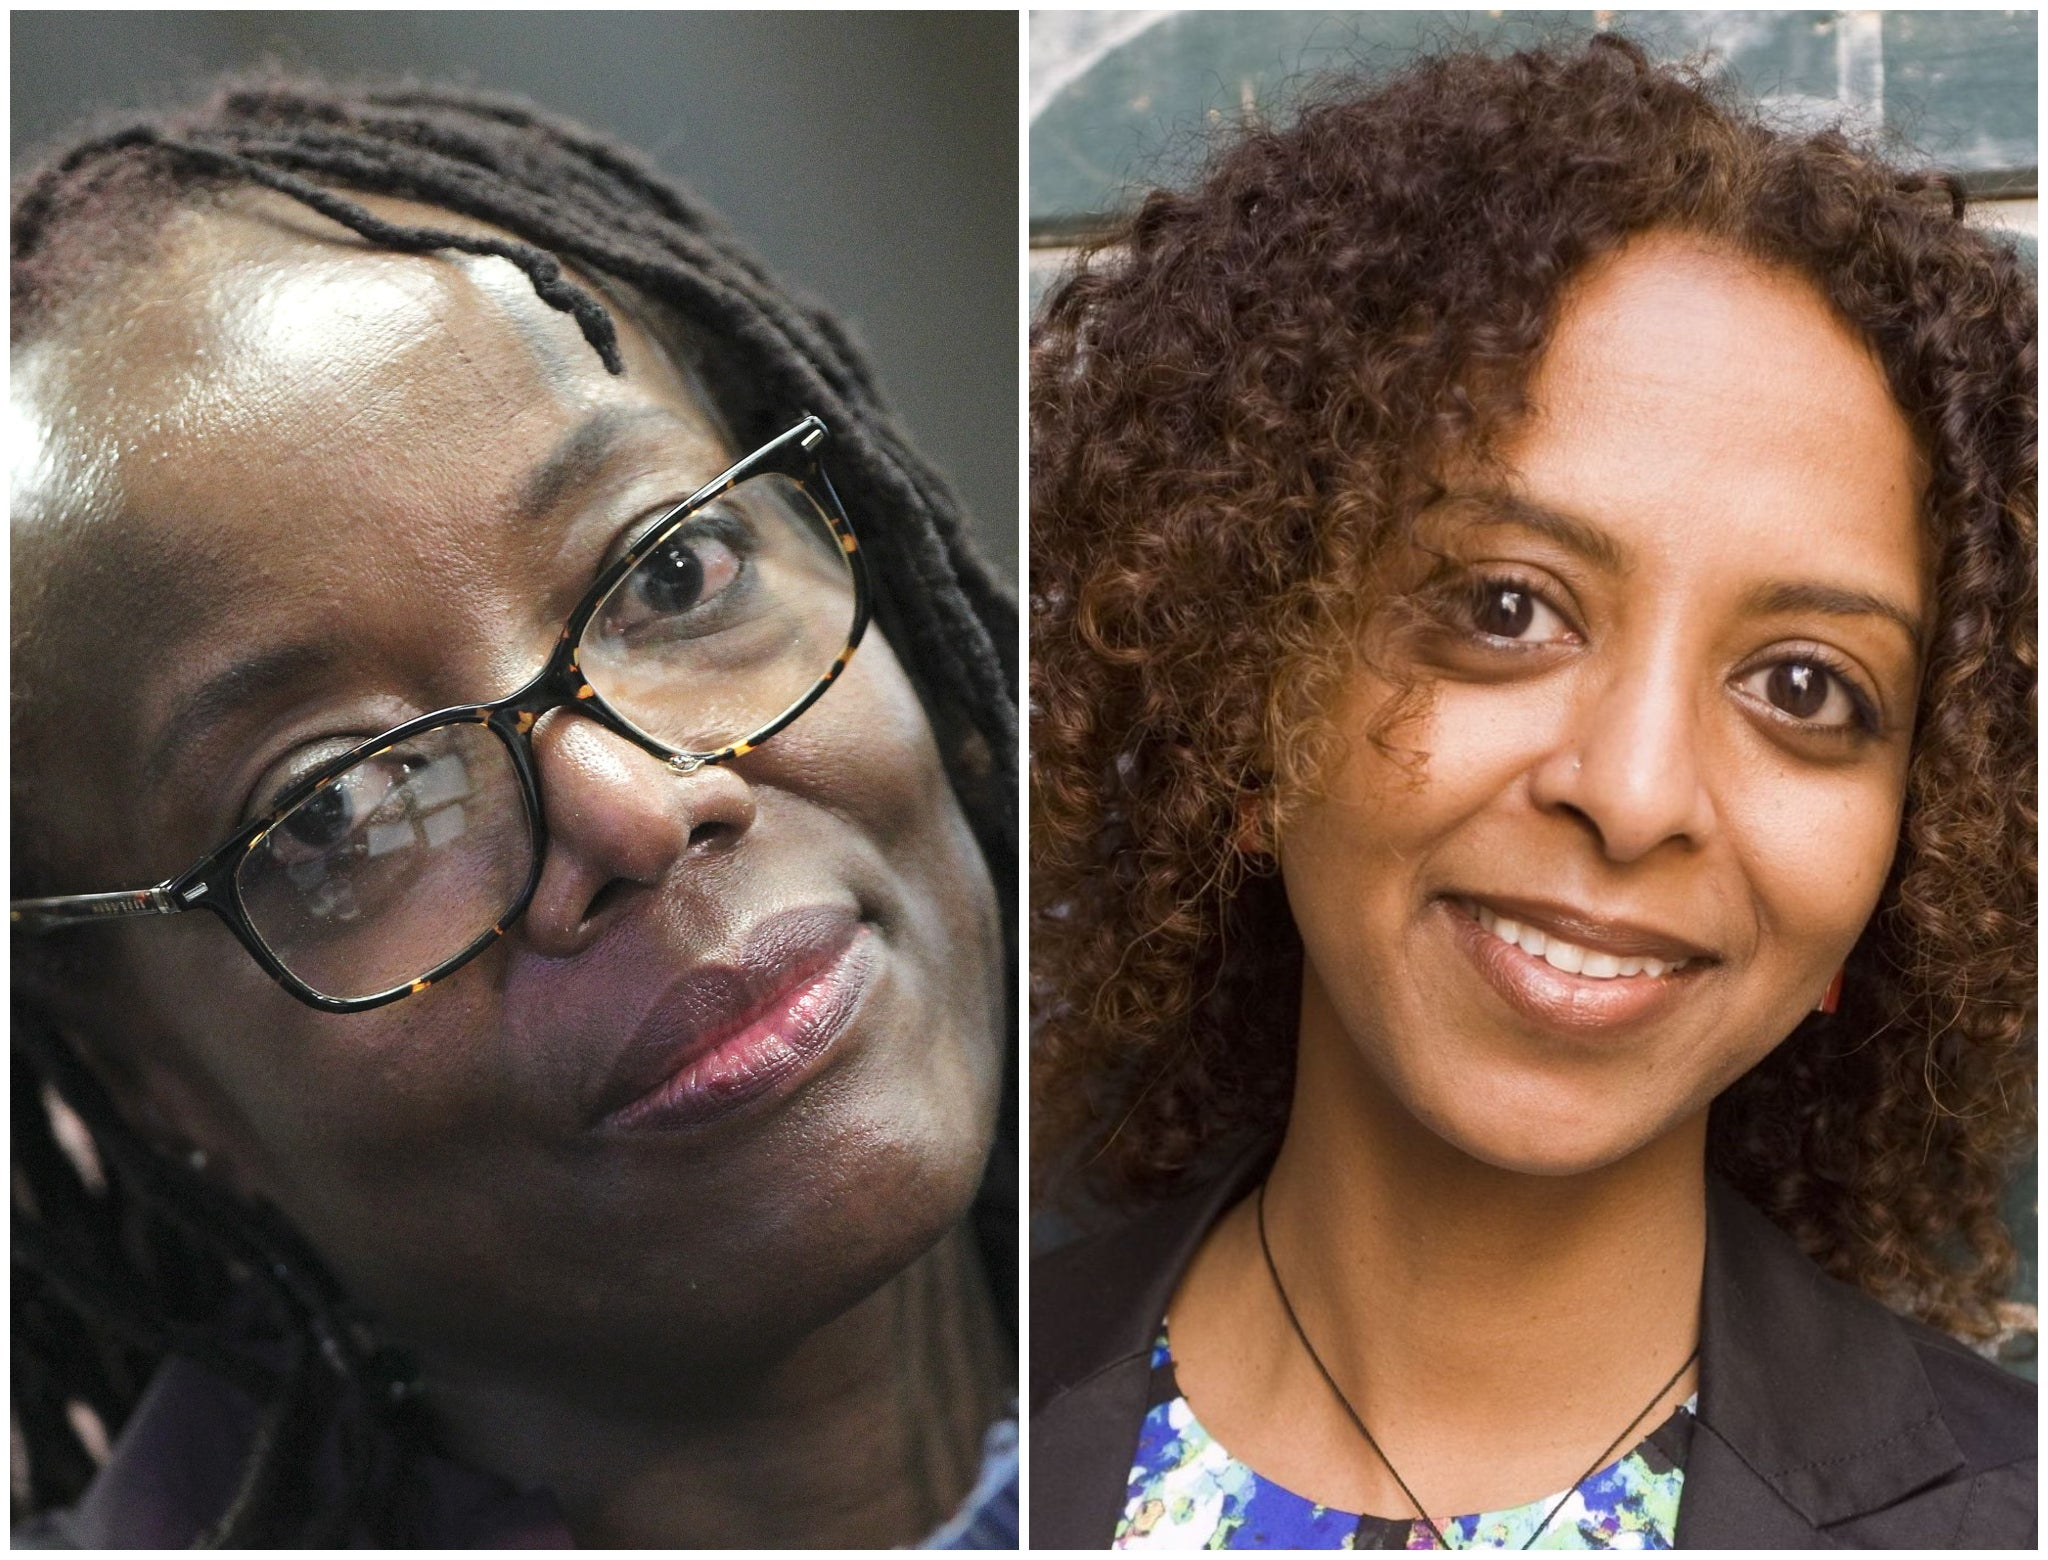 Booker Prize 2020: A guide to the shortlisted authors, from Douglas Stuart to Avni Doshi